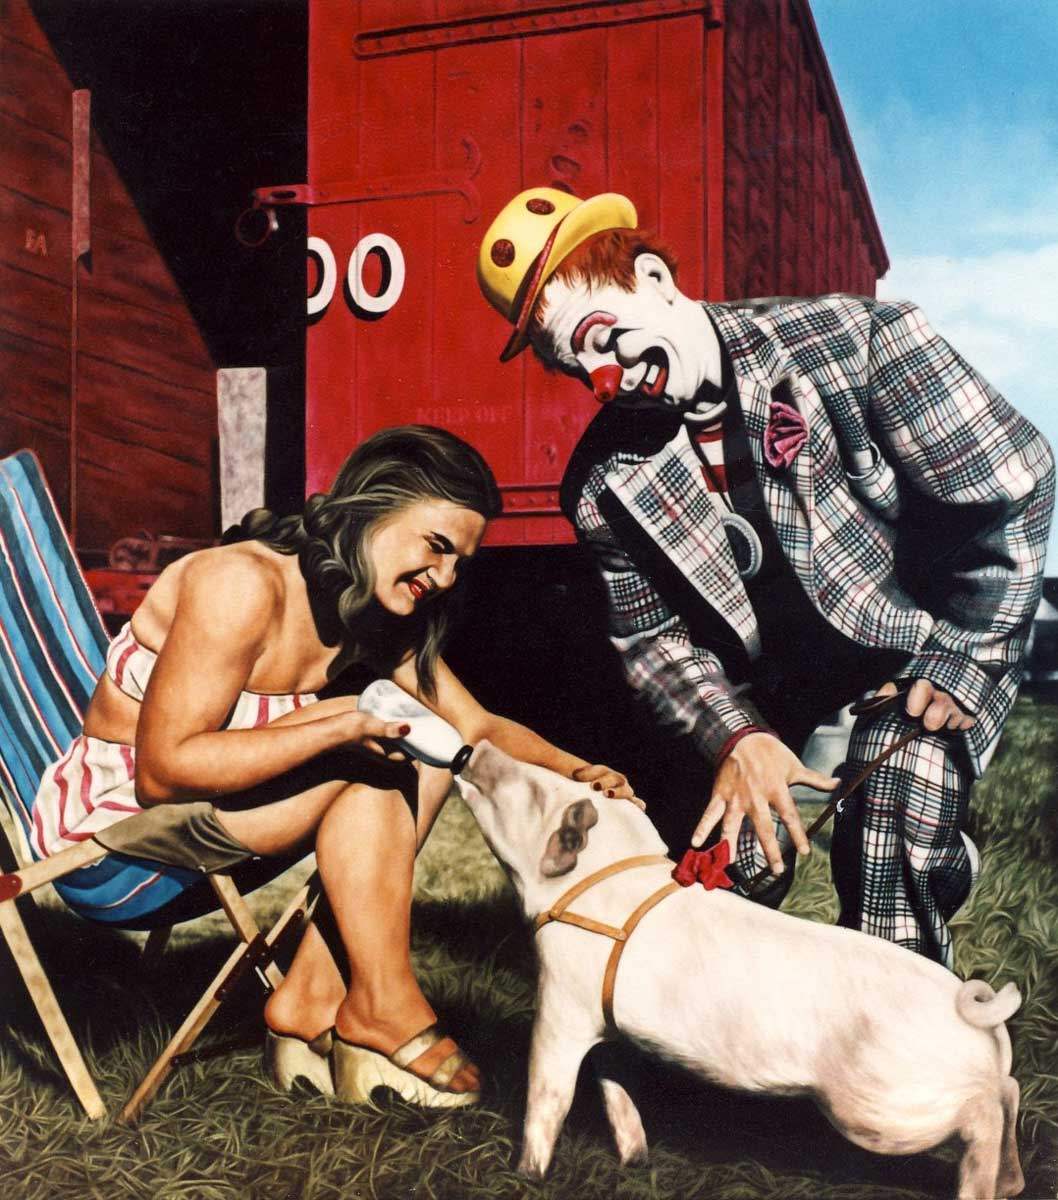 Clown, Woman and Pig - Richard Moon